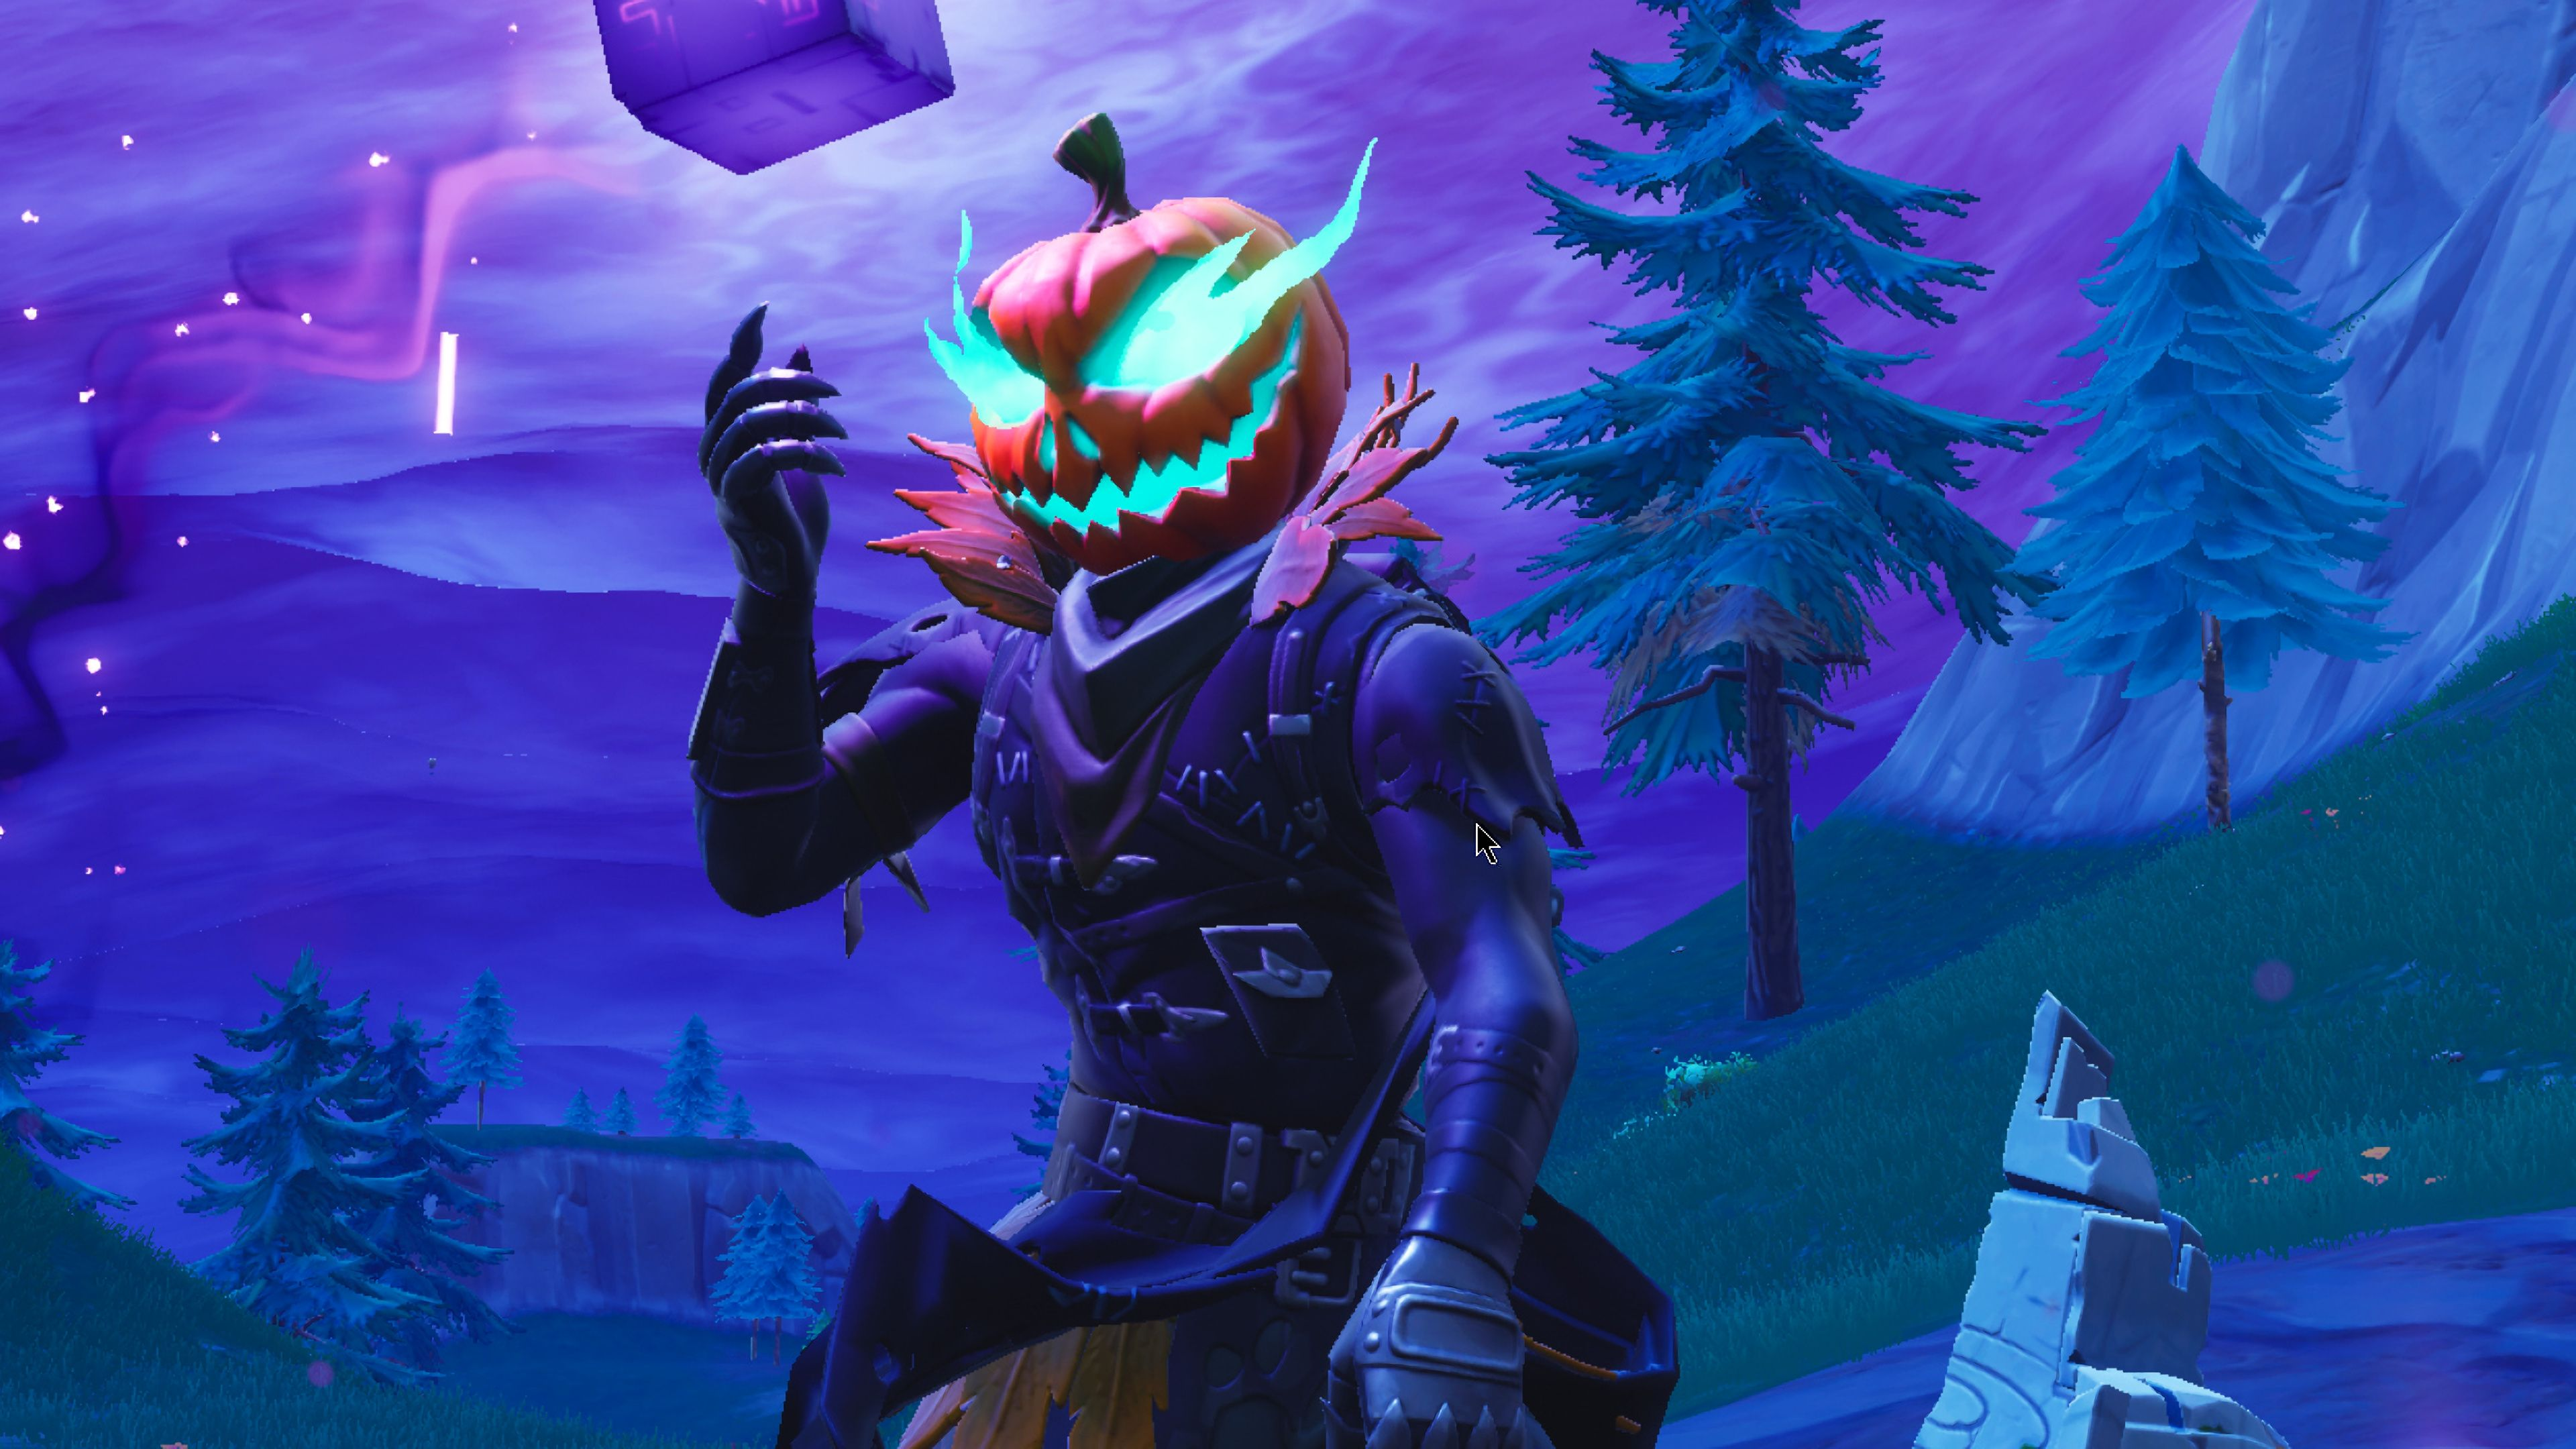 Hollowhead Fortnite Battle Royale 4k, HD Games, 4k Wallpapers